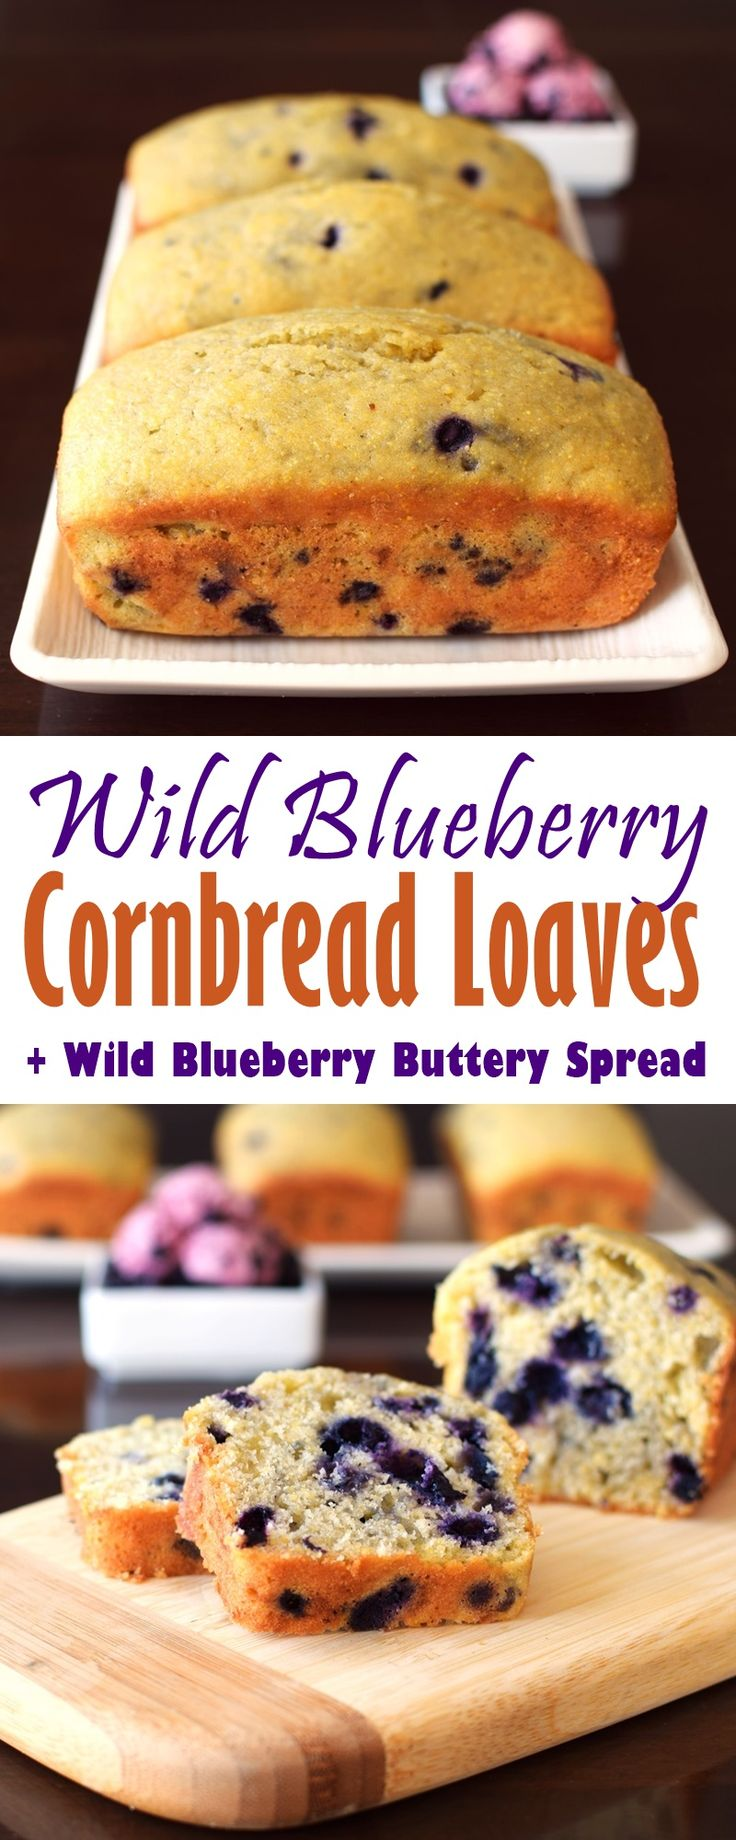 Wild Blueberry Cornbread Loaves with Wild Blueberry Buttery Spread - dairy-free, nut-free + gluten-free optional  @wildbberries